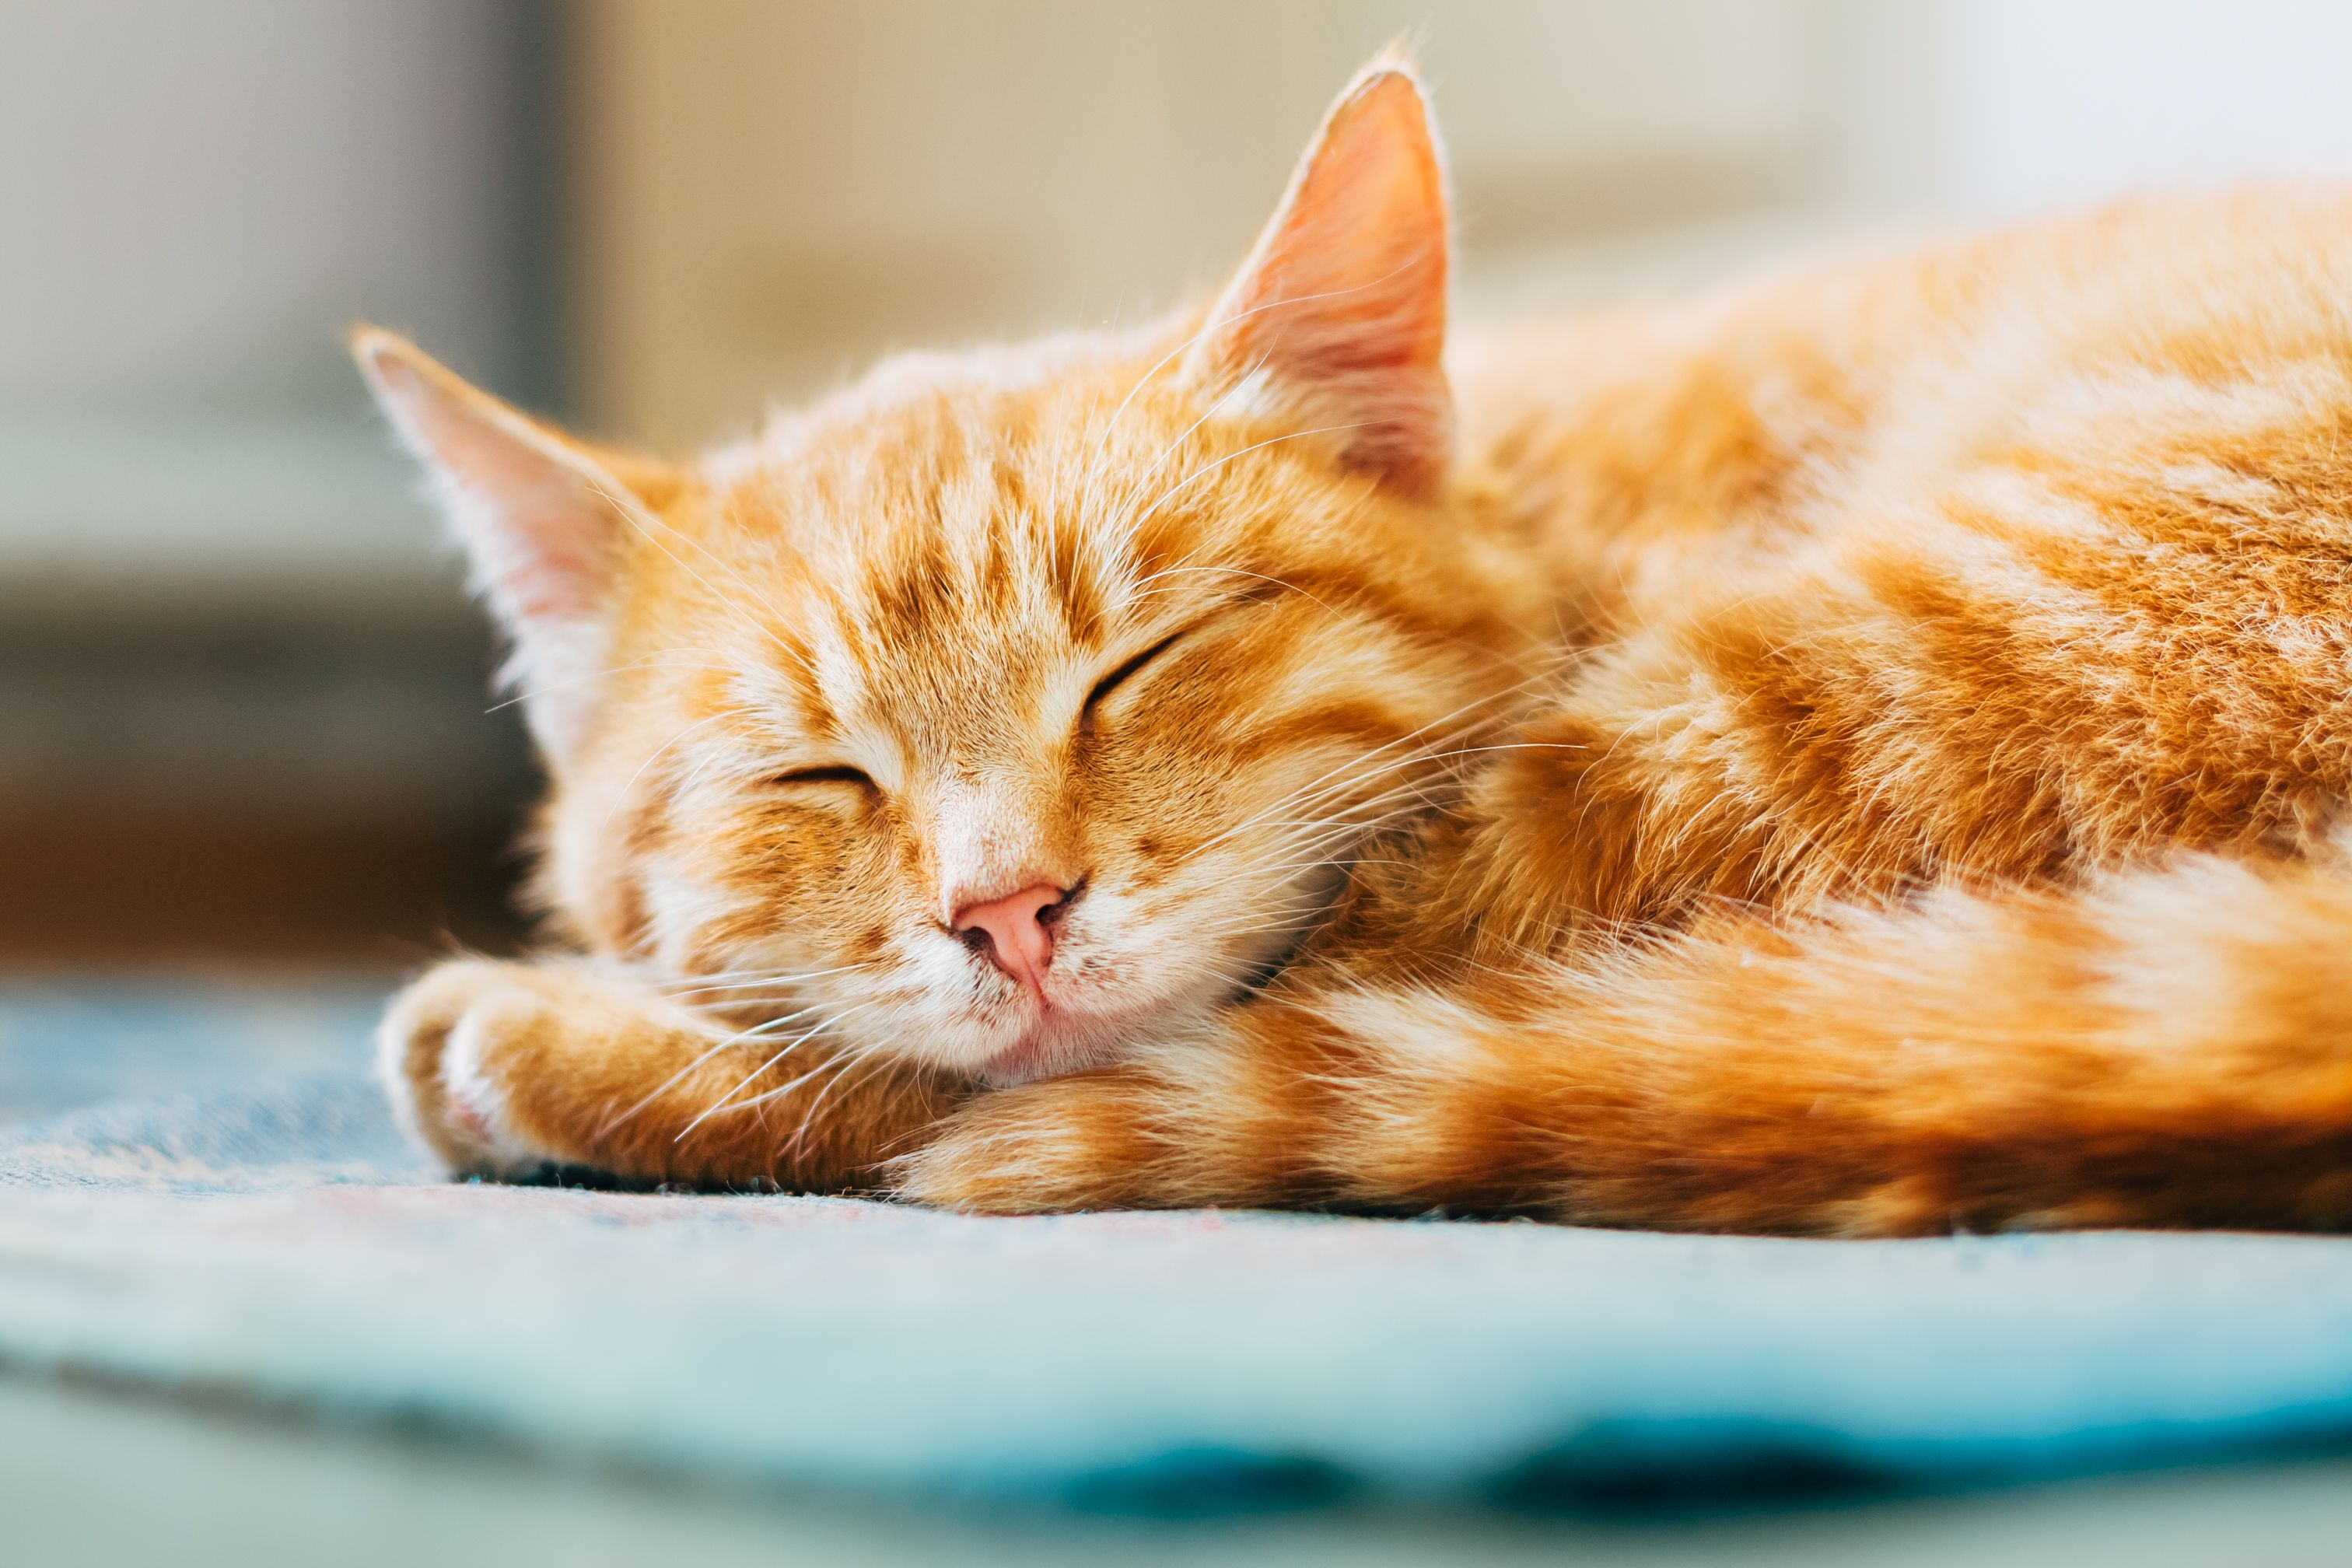 20 of the most popular cat names for 2019 have been revealed